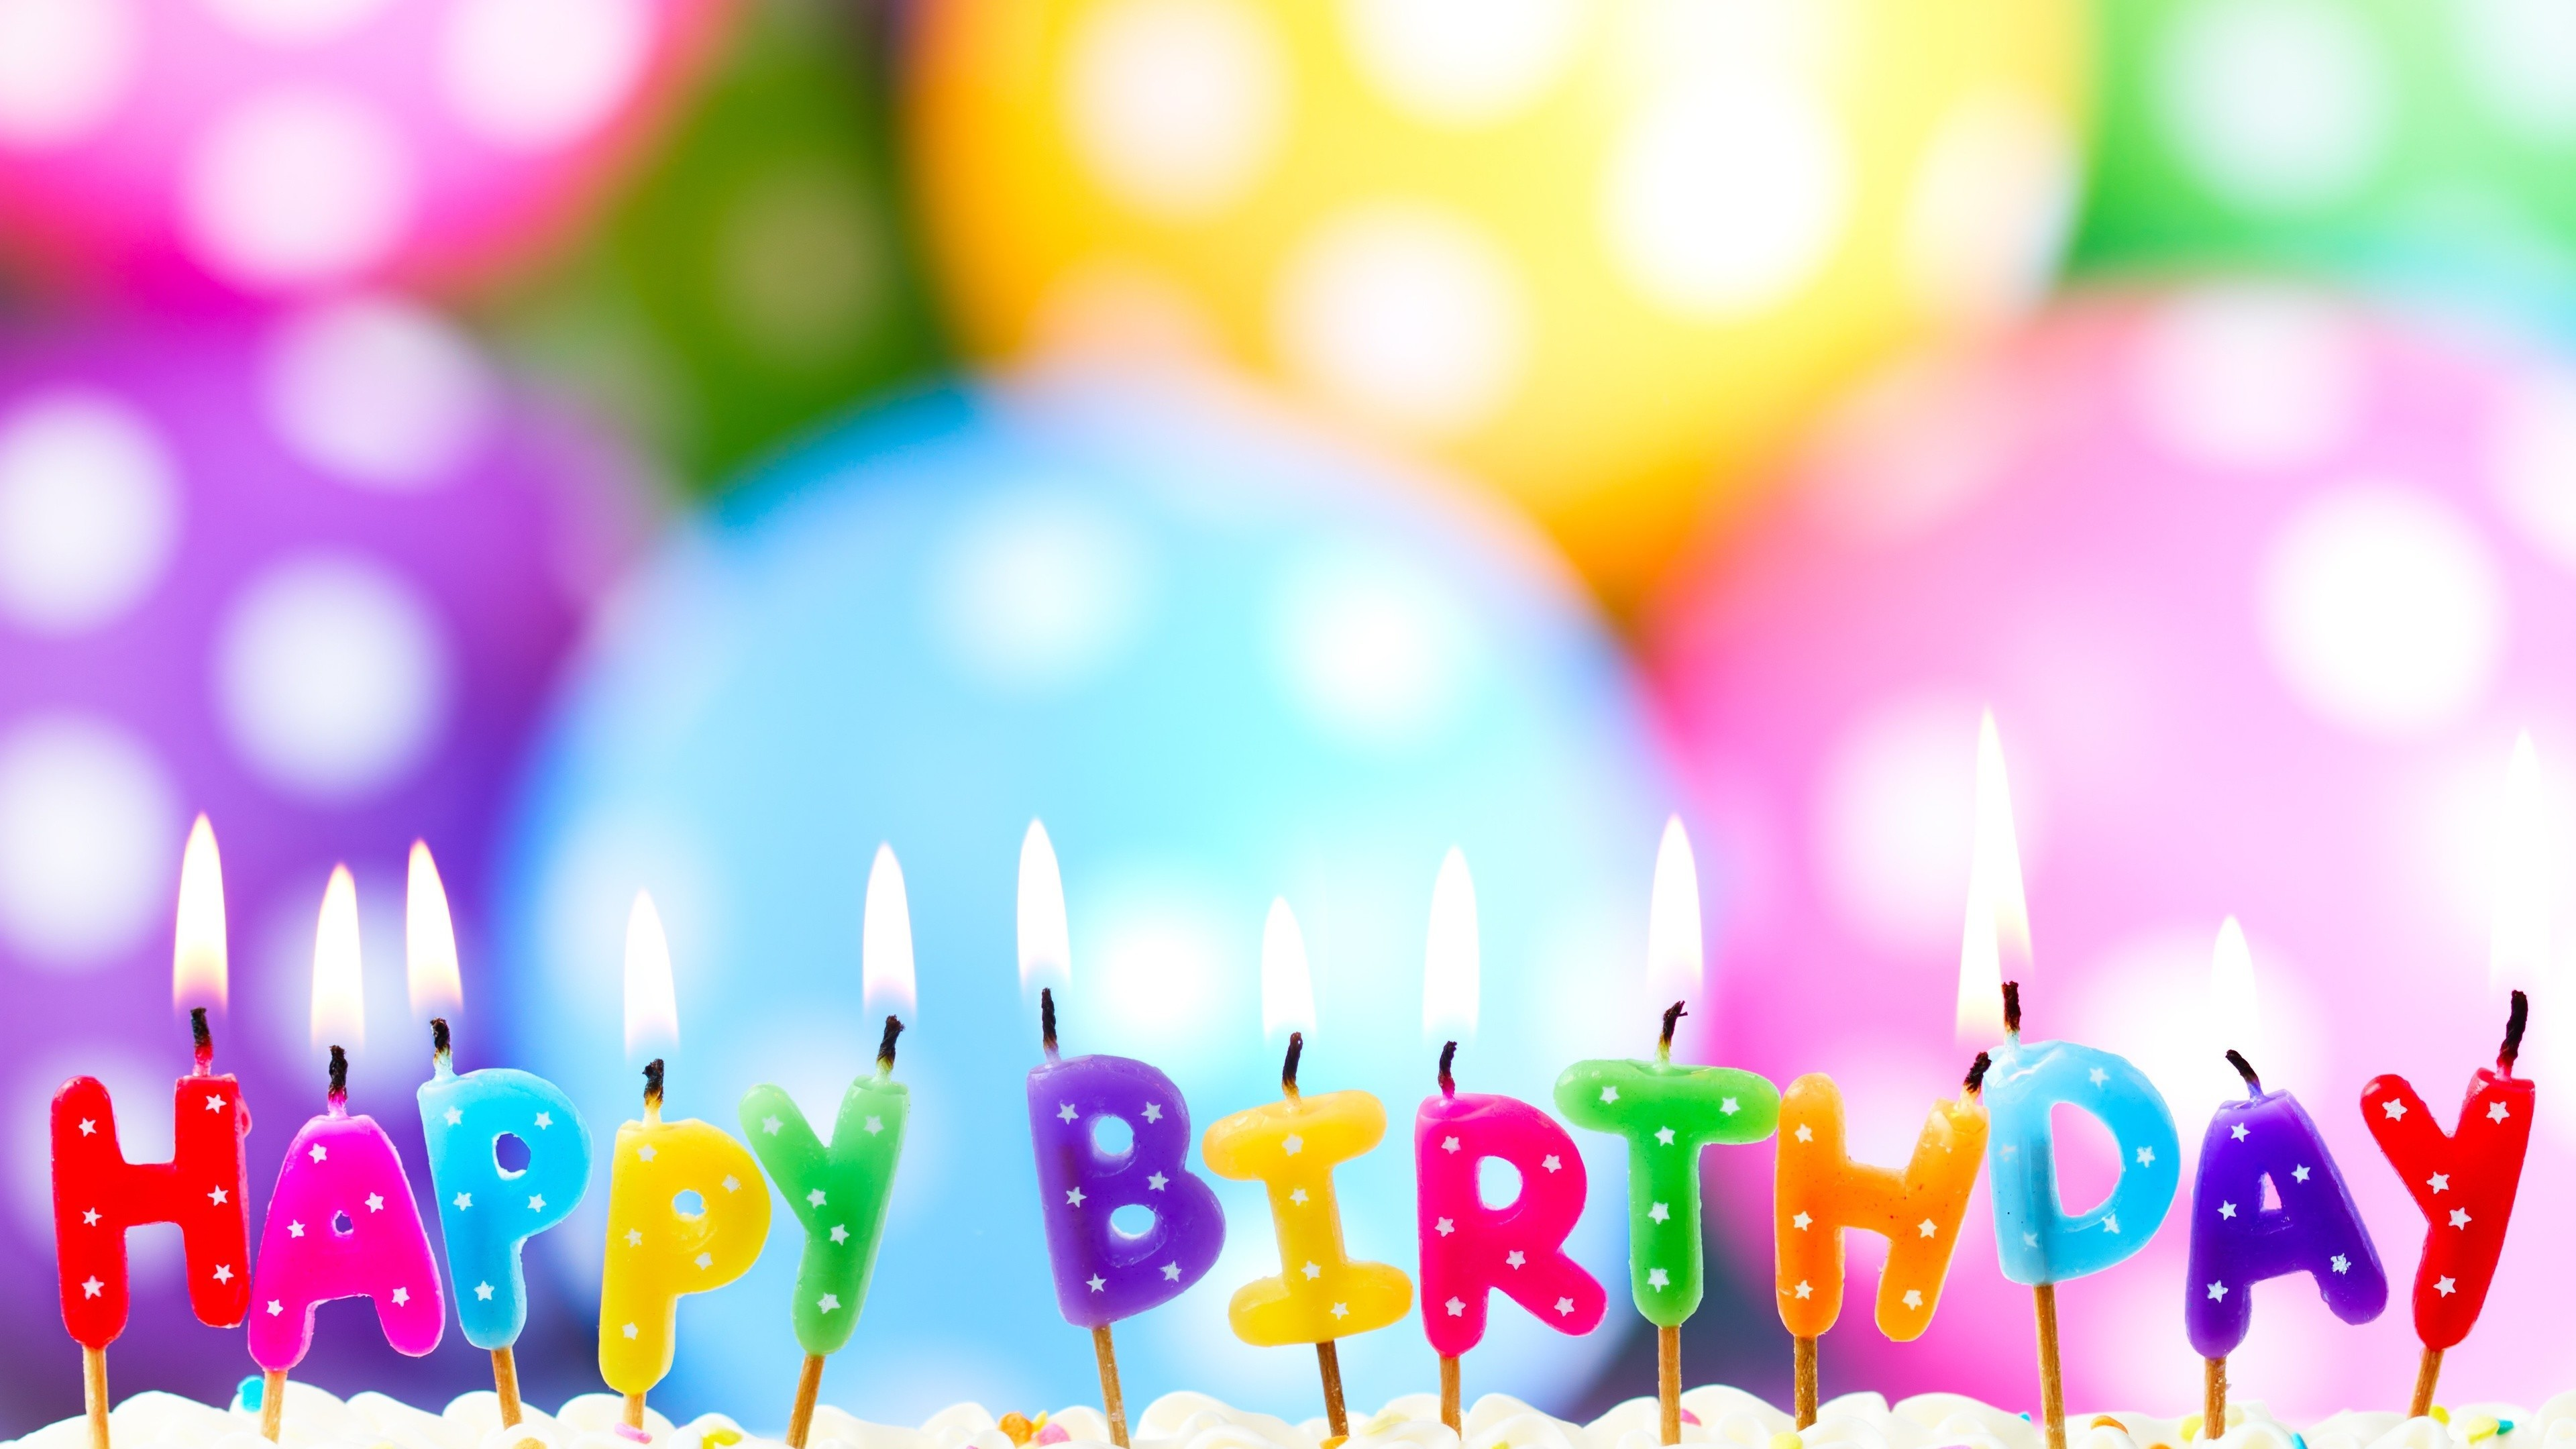 Amazing Wallpaper Name Birthday - 922297-happy-birthday-wallpapers-with-name-3840x2160-for-iphone-5s  You Should Have_773425.jpg